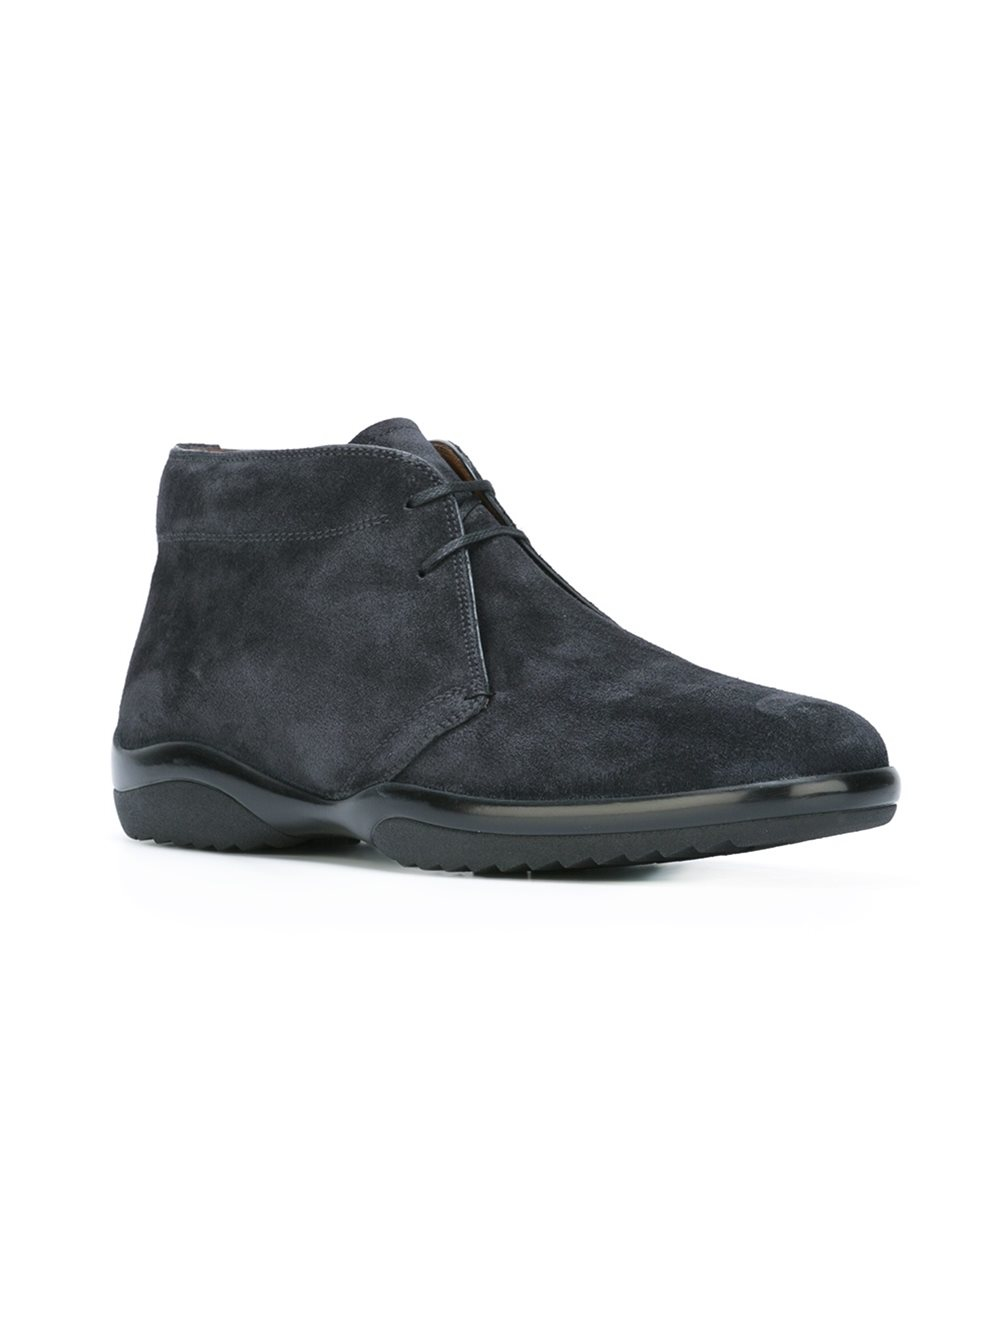 Lyst Bally Suede Ankle Boots In Blue For Men